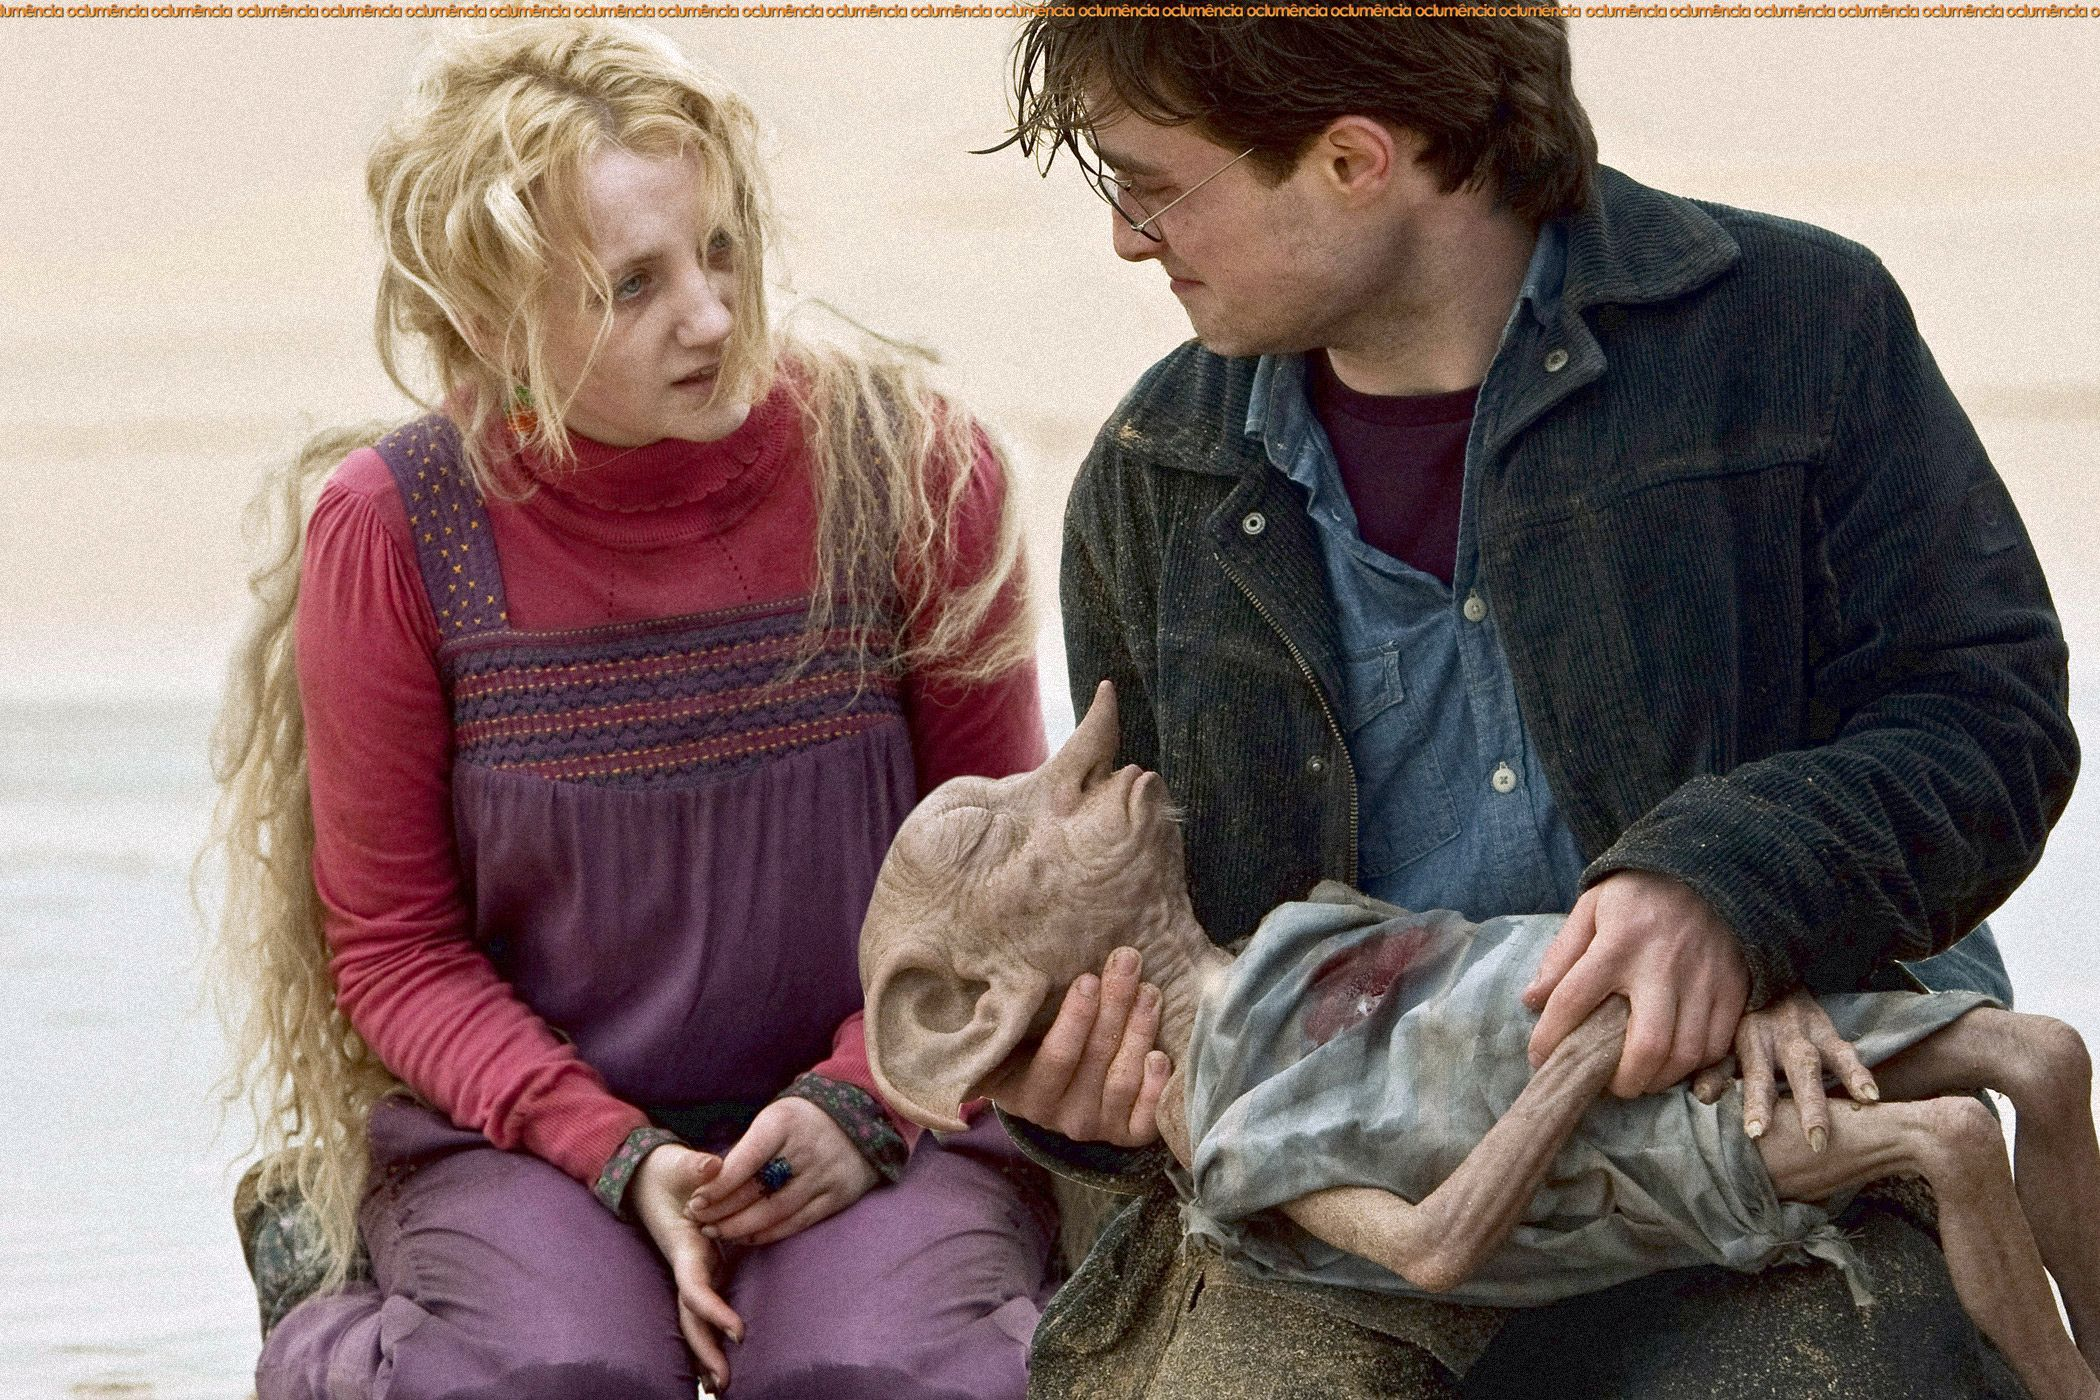 Luna-with-Harry-and-Dobby-ravenclaw-2826